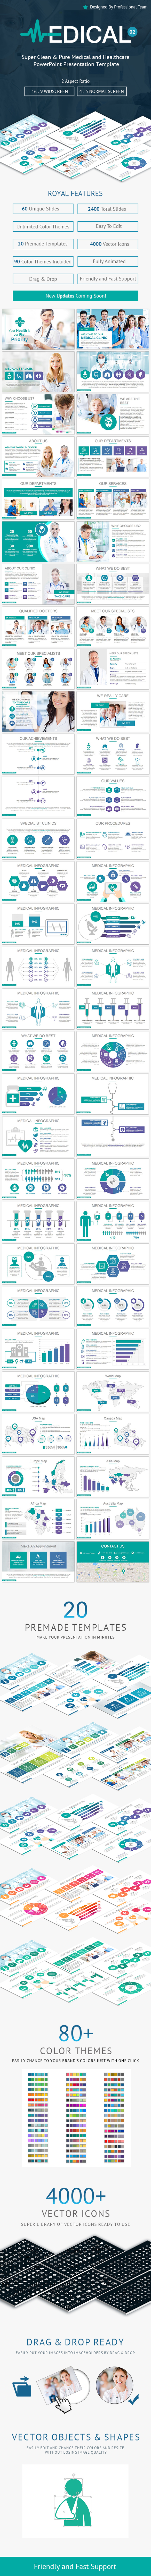 medical and healthcare 2 powerpoint presentation templaterojdark, Presentation templates